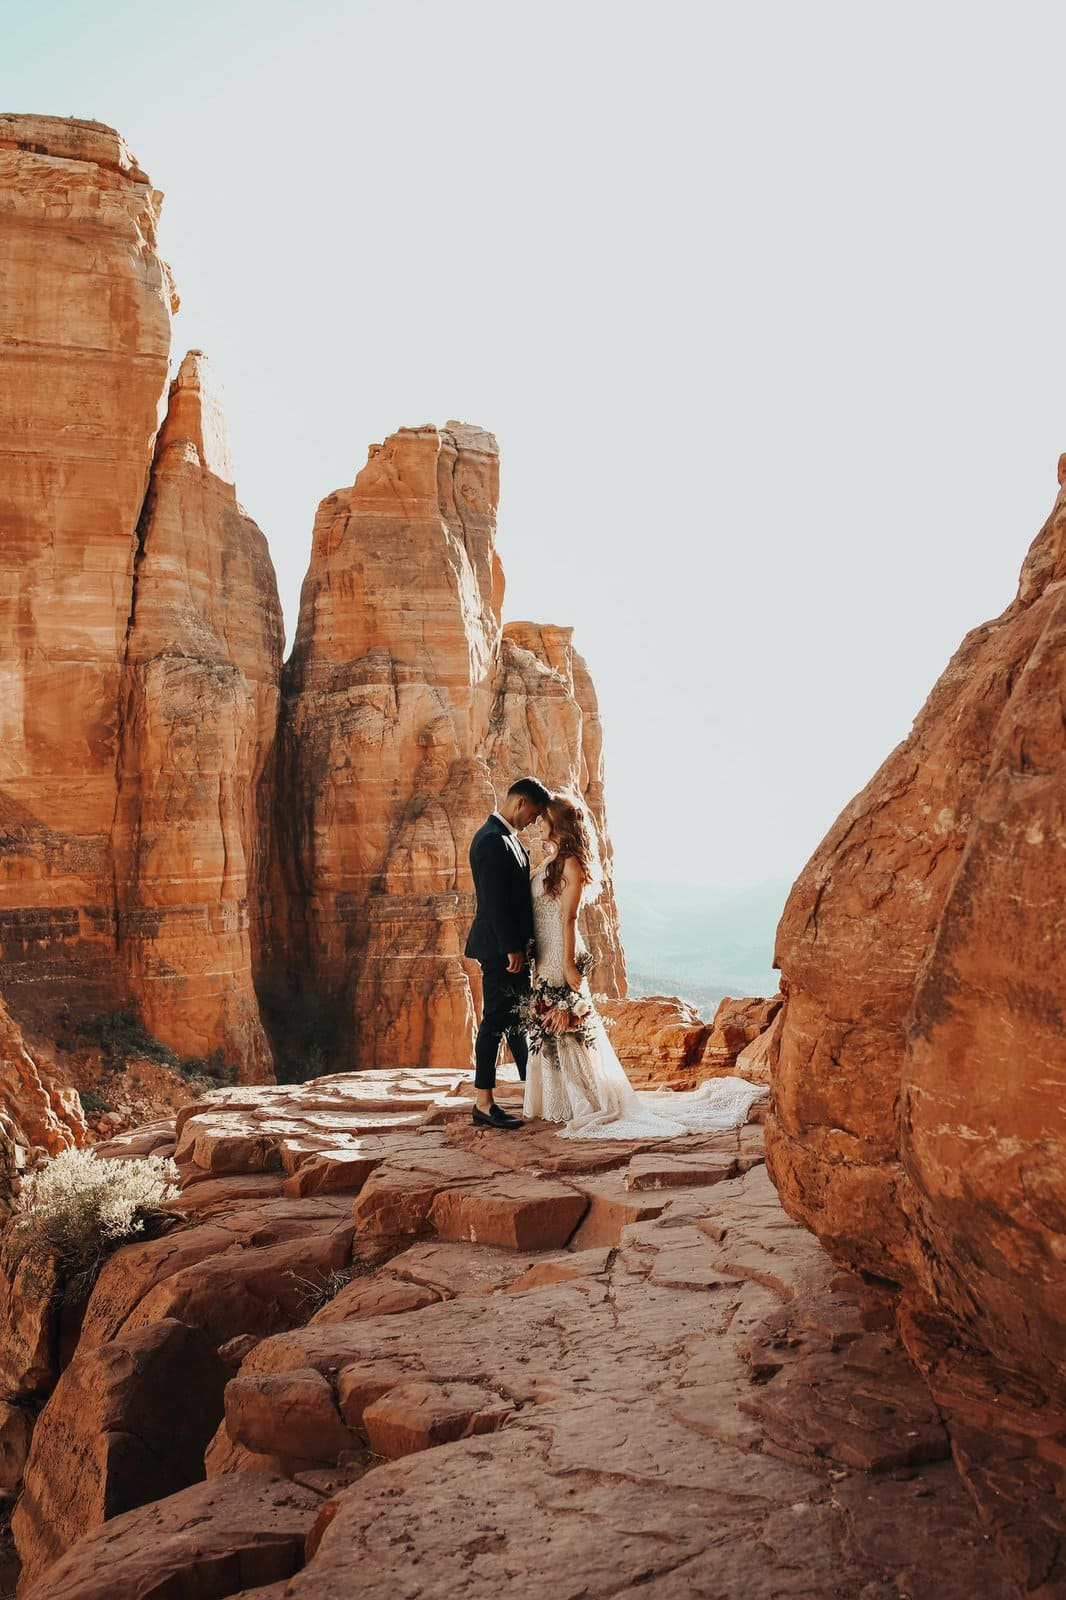 Couple photography at red rocks.